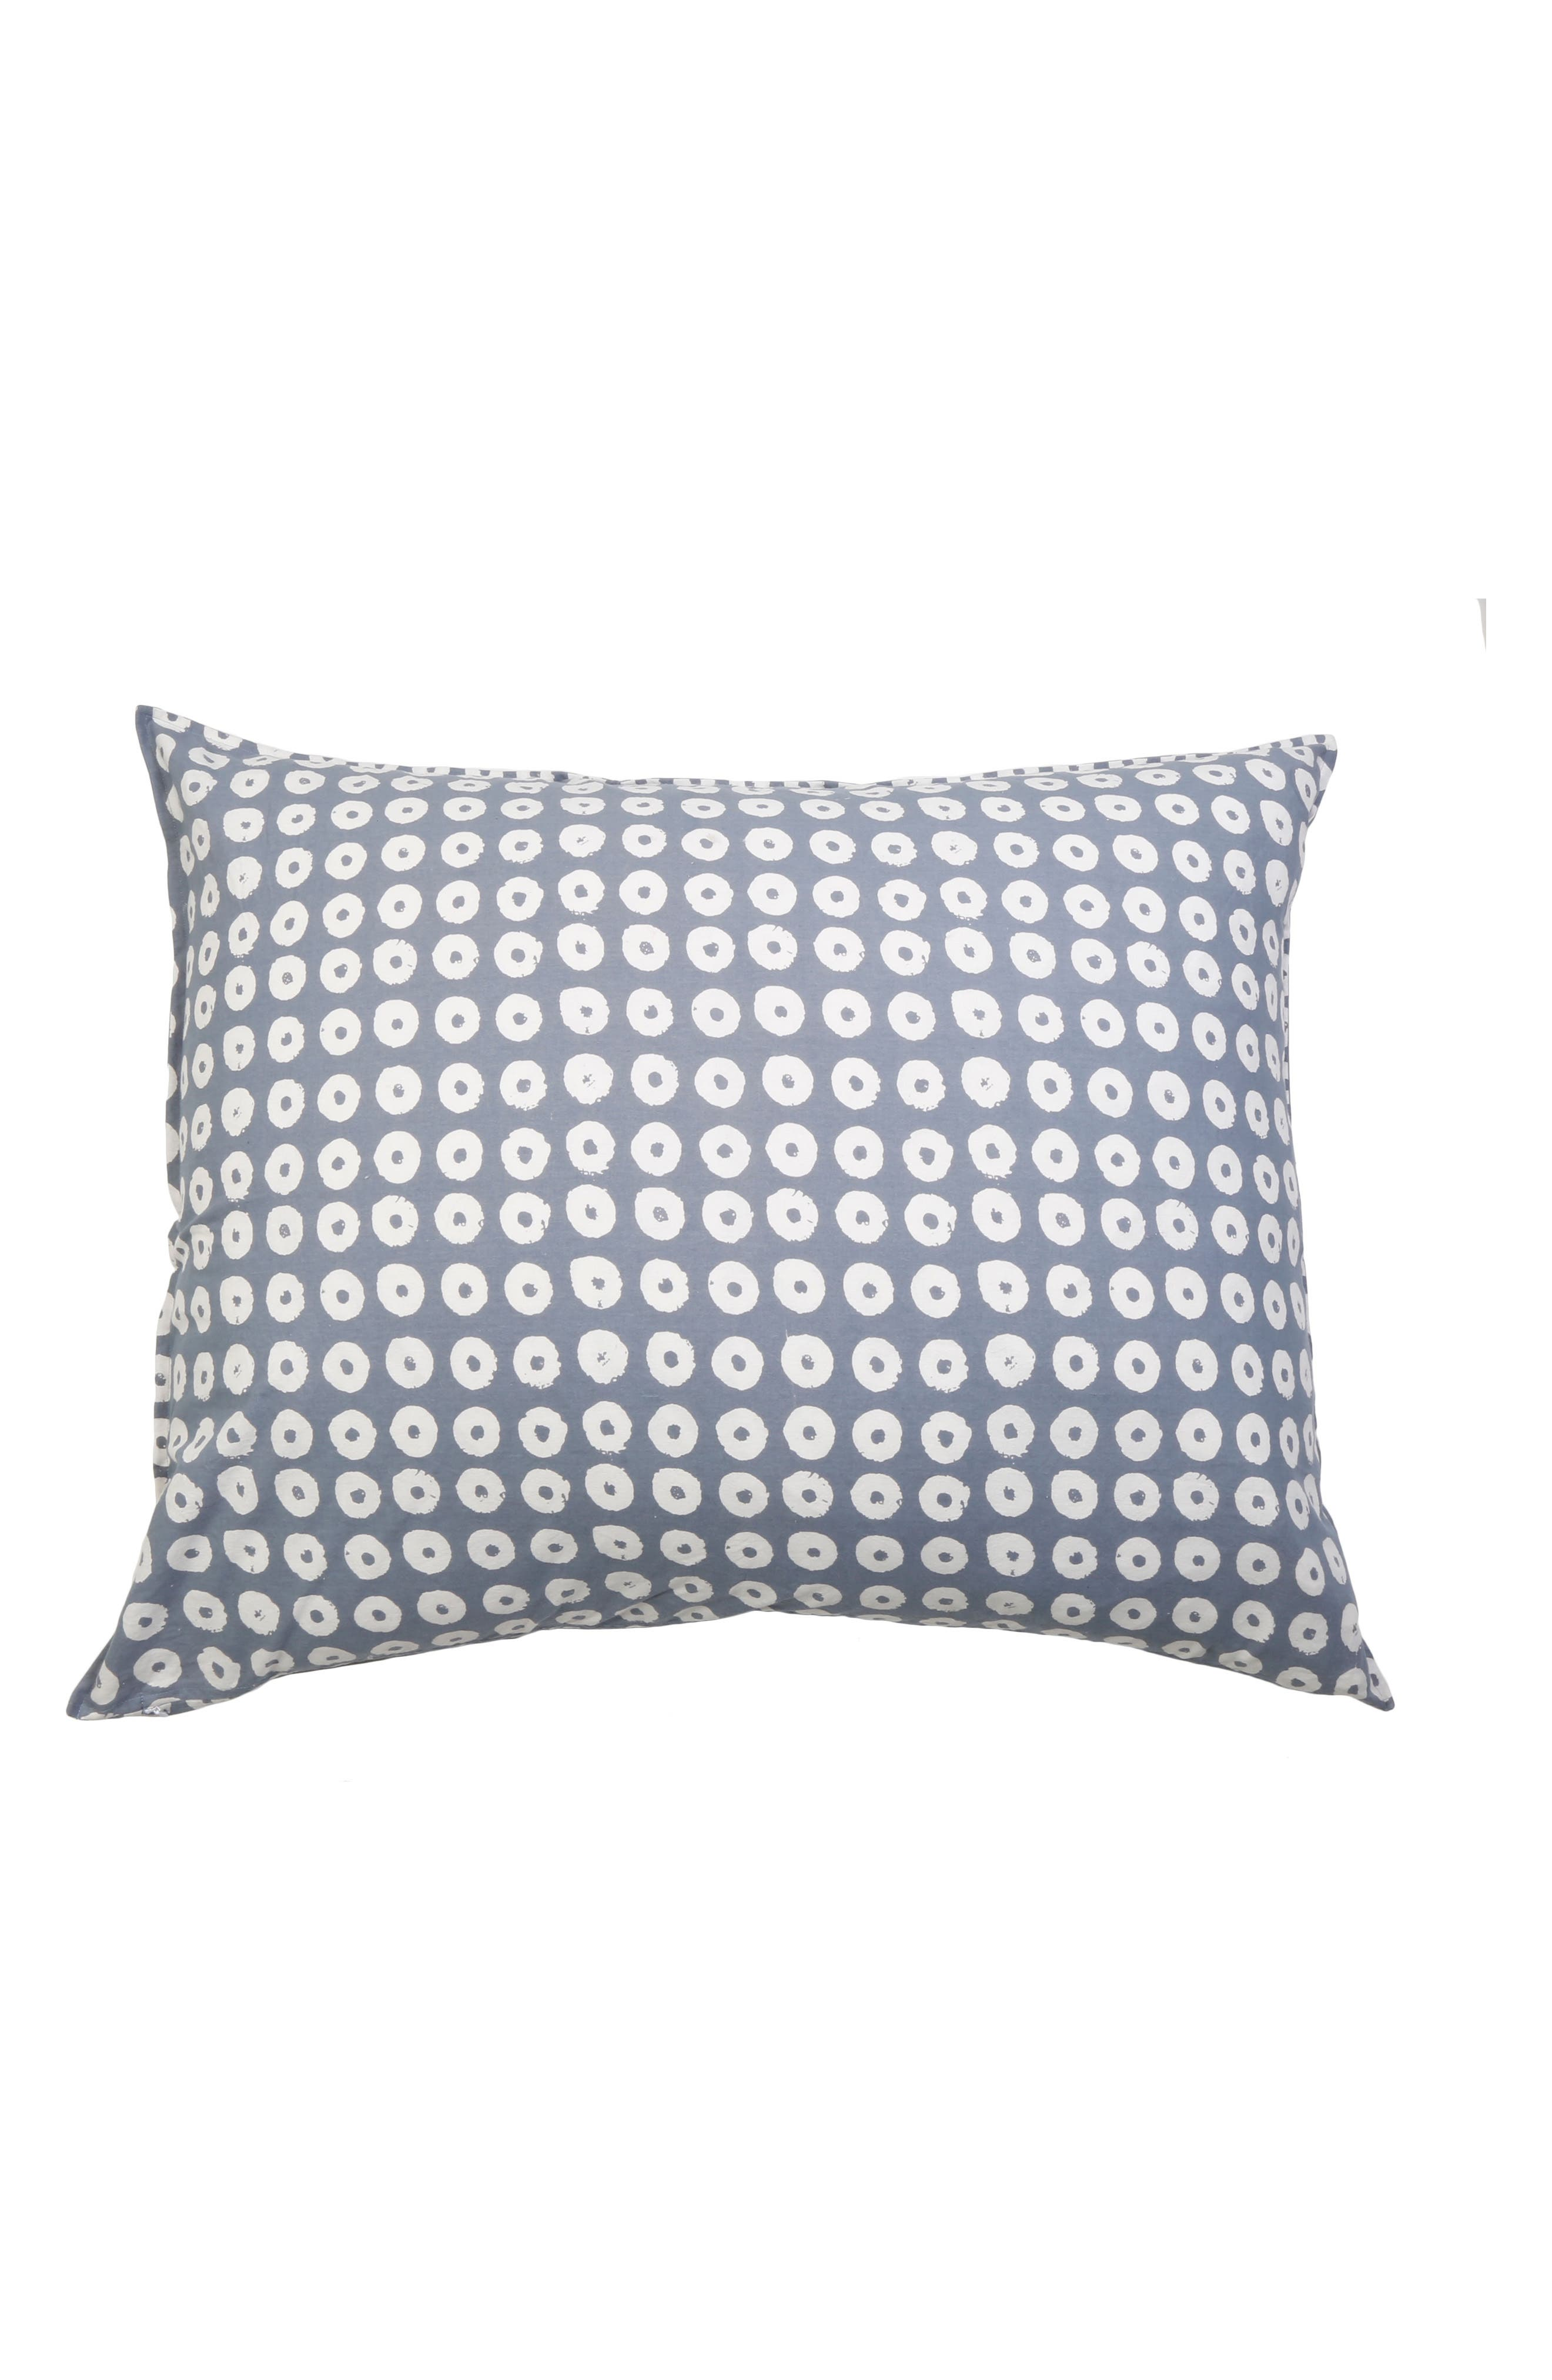 Main Image - Pom Pom at Home Tootsie Accent Pillow